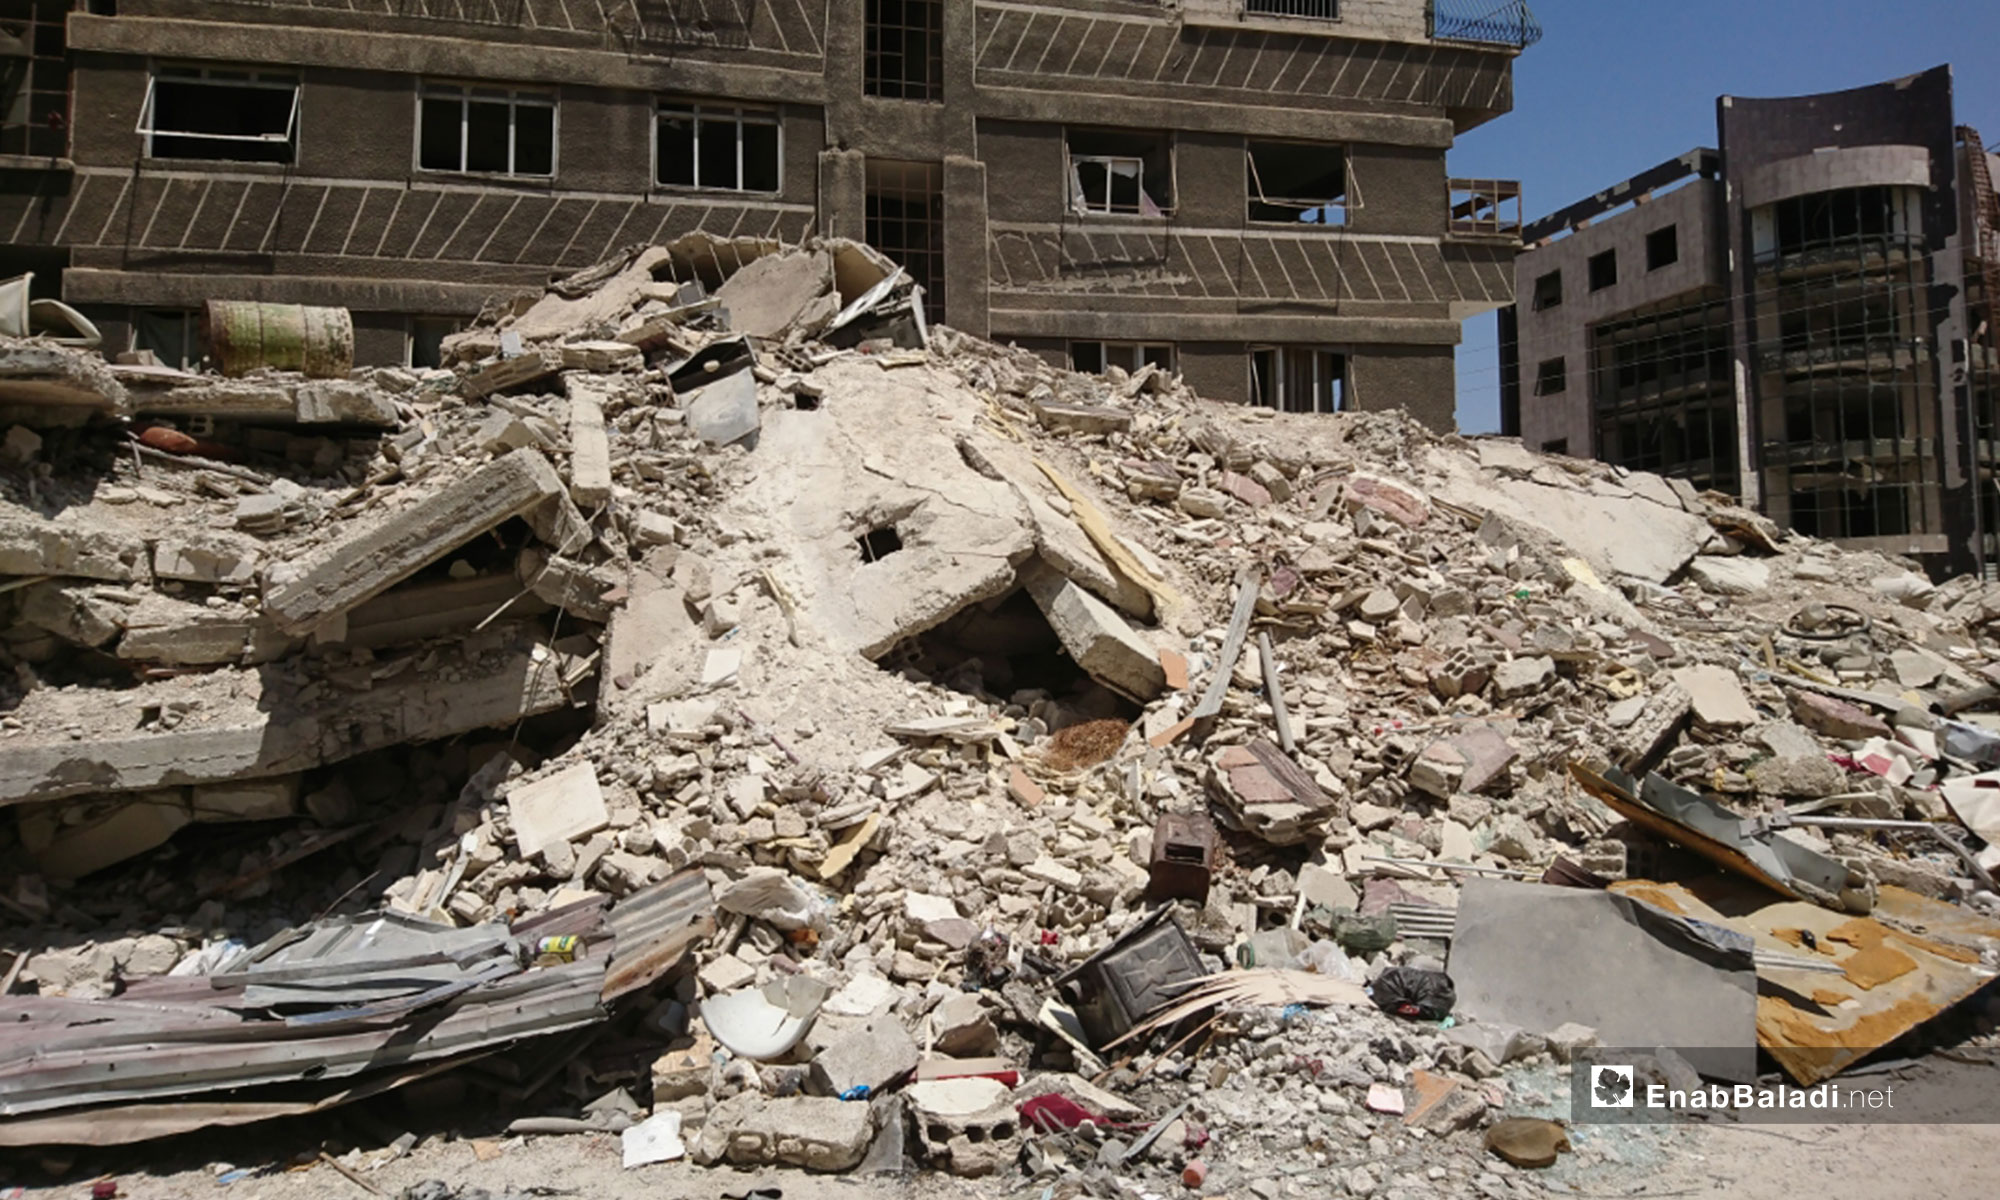 Traces of shelling in town of Kafr Batna, Eastern Ghouta – August 13, 2018 (Enab Baladi)